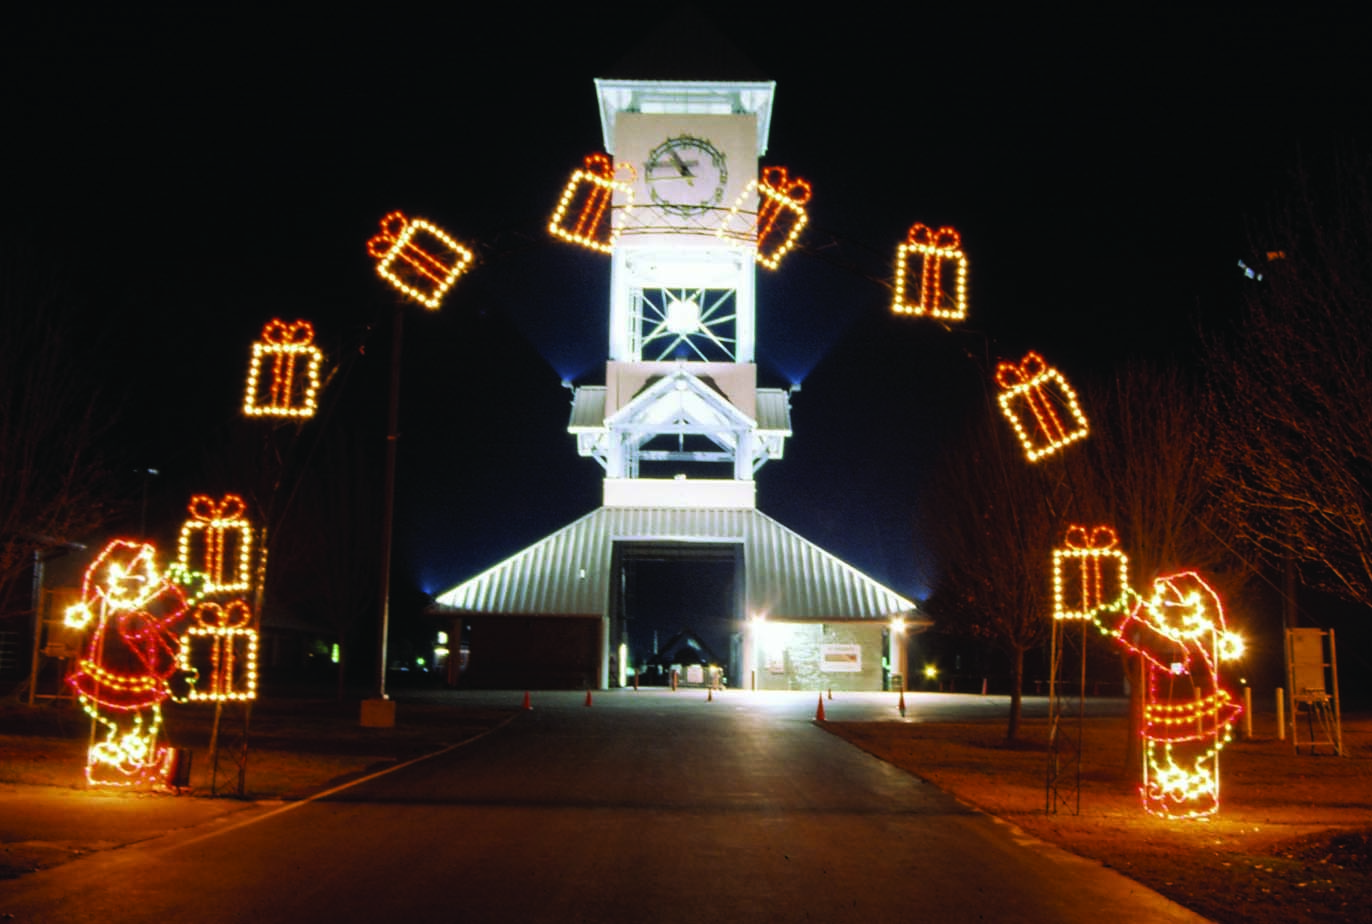 lighted arch outdoor christmas decorations illustrated on the holiday designs christmas decorations web site are ready to install